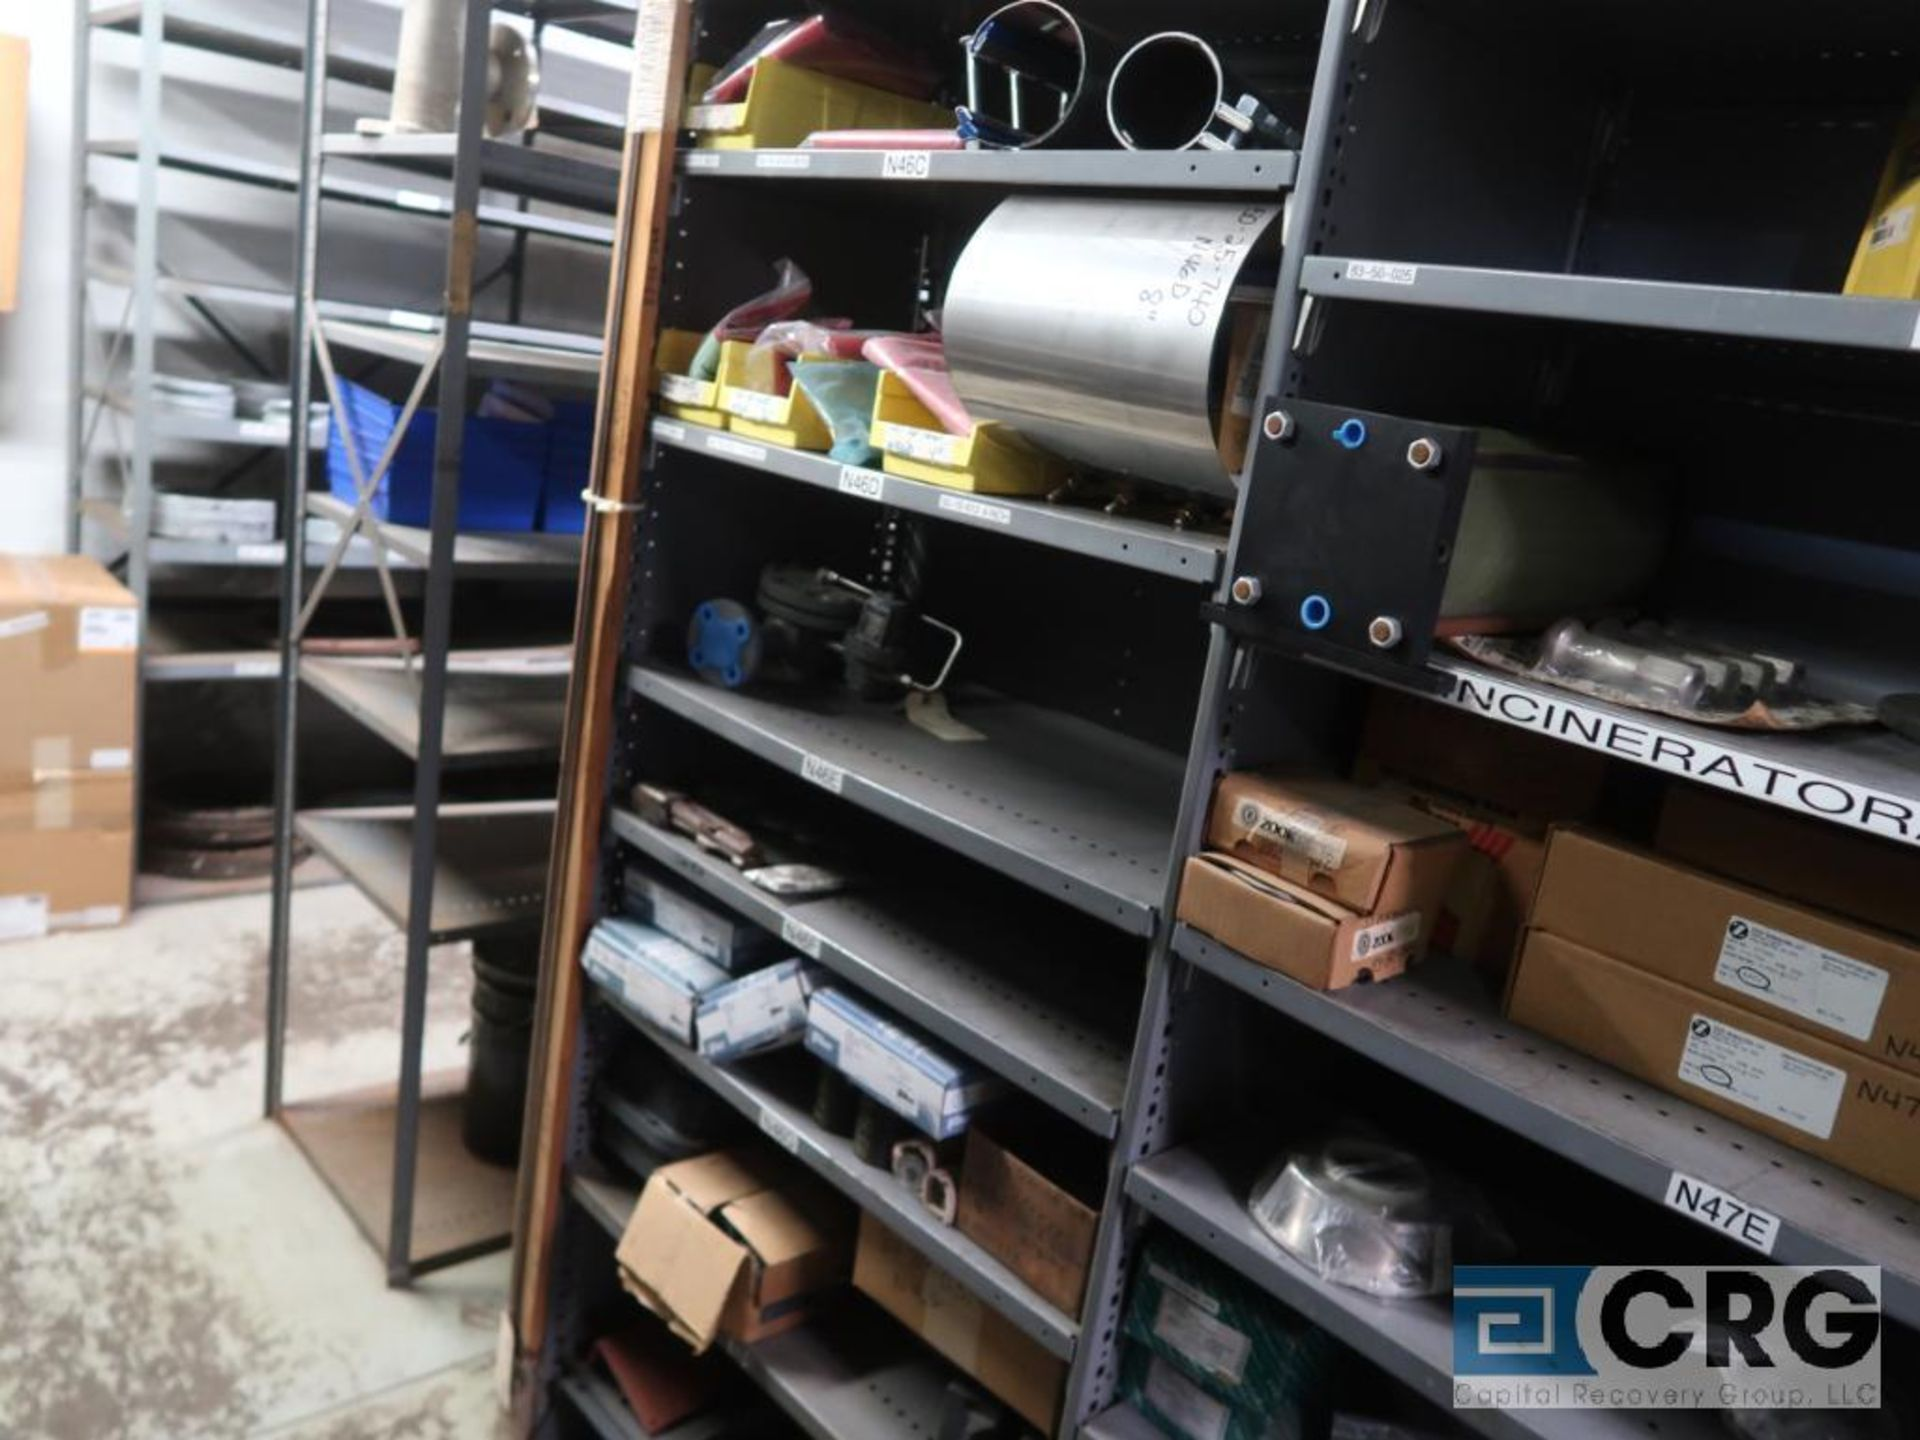 Lot of (35) sections with assorted parts including gaskets, fittings, shaft pins, gears, and - Image 5 of 17